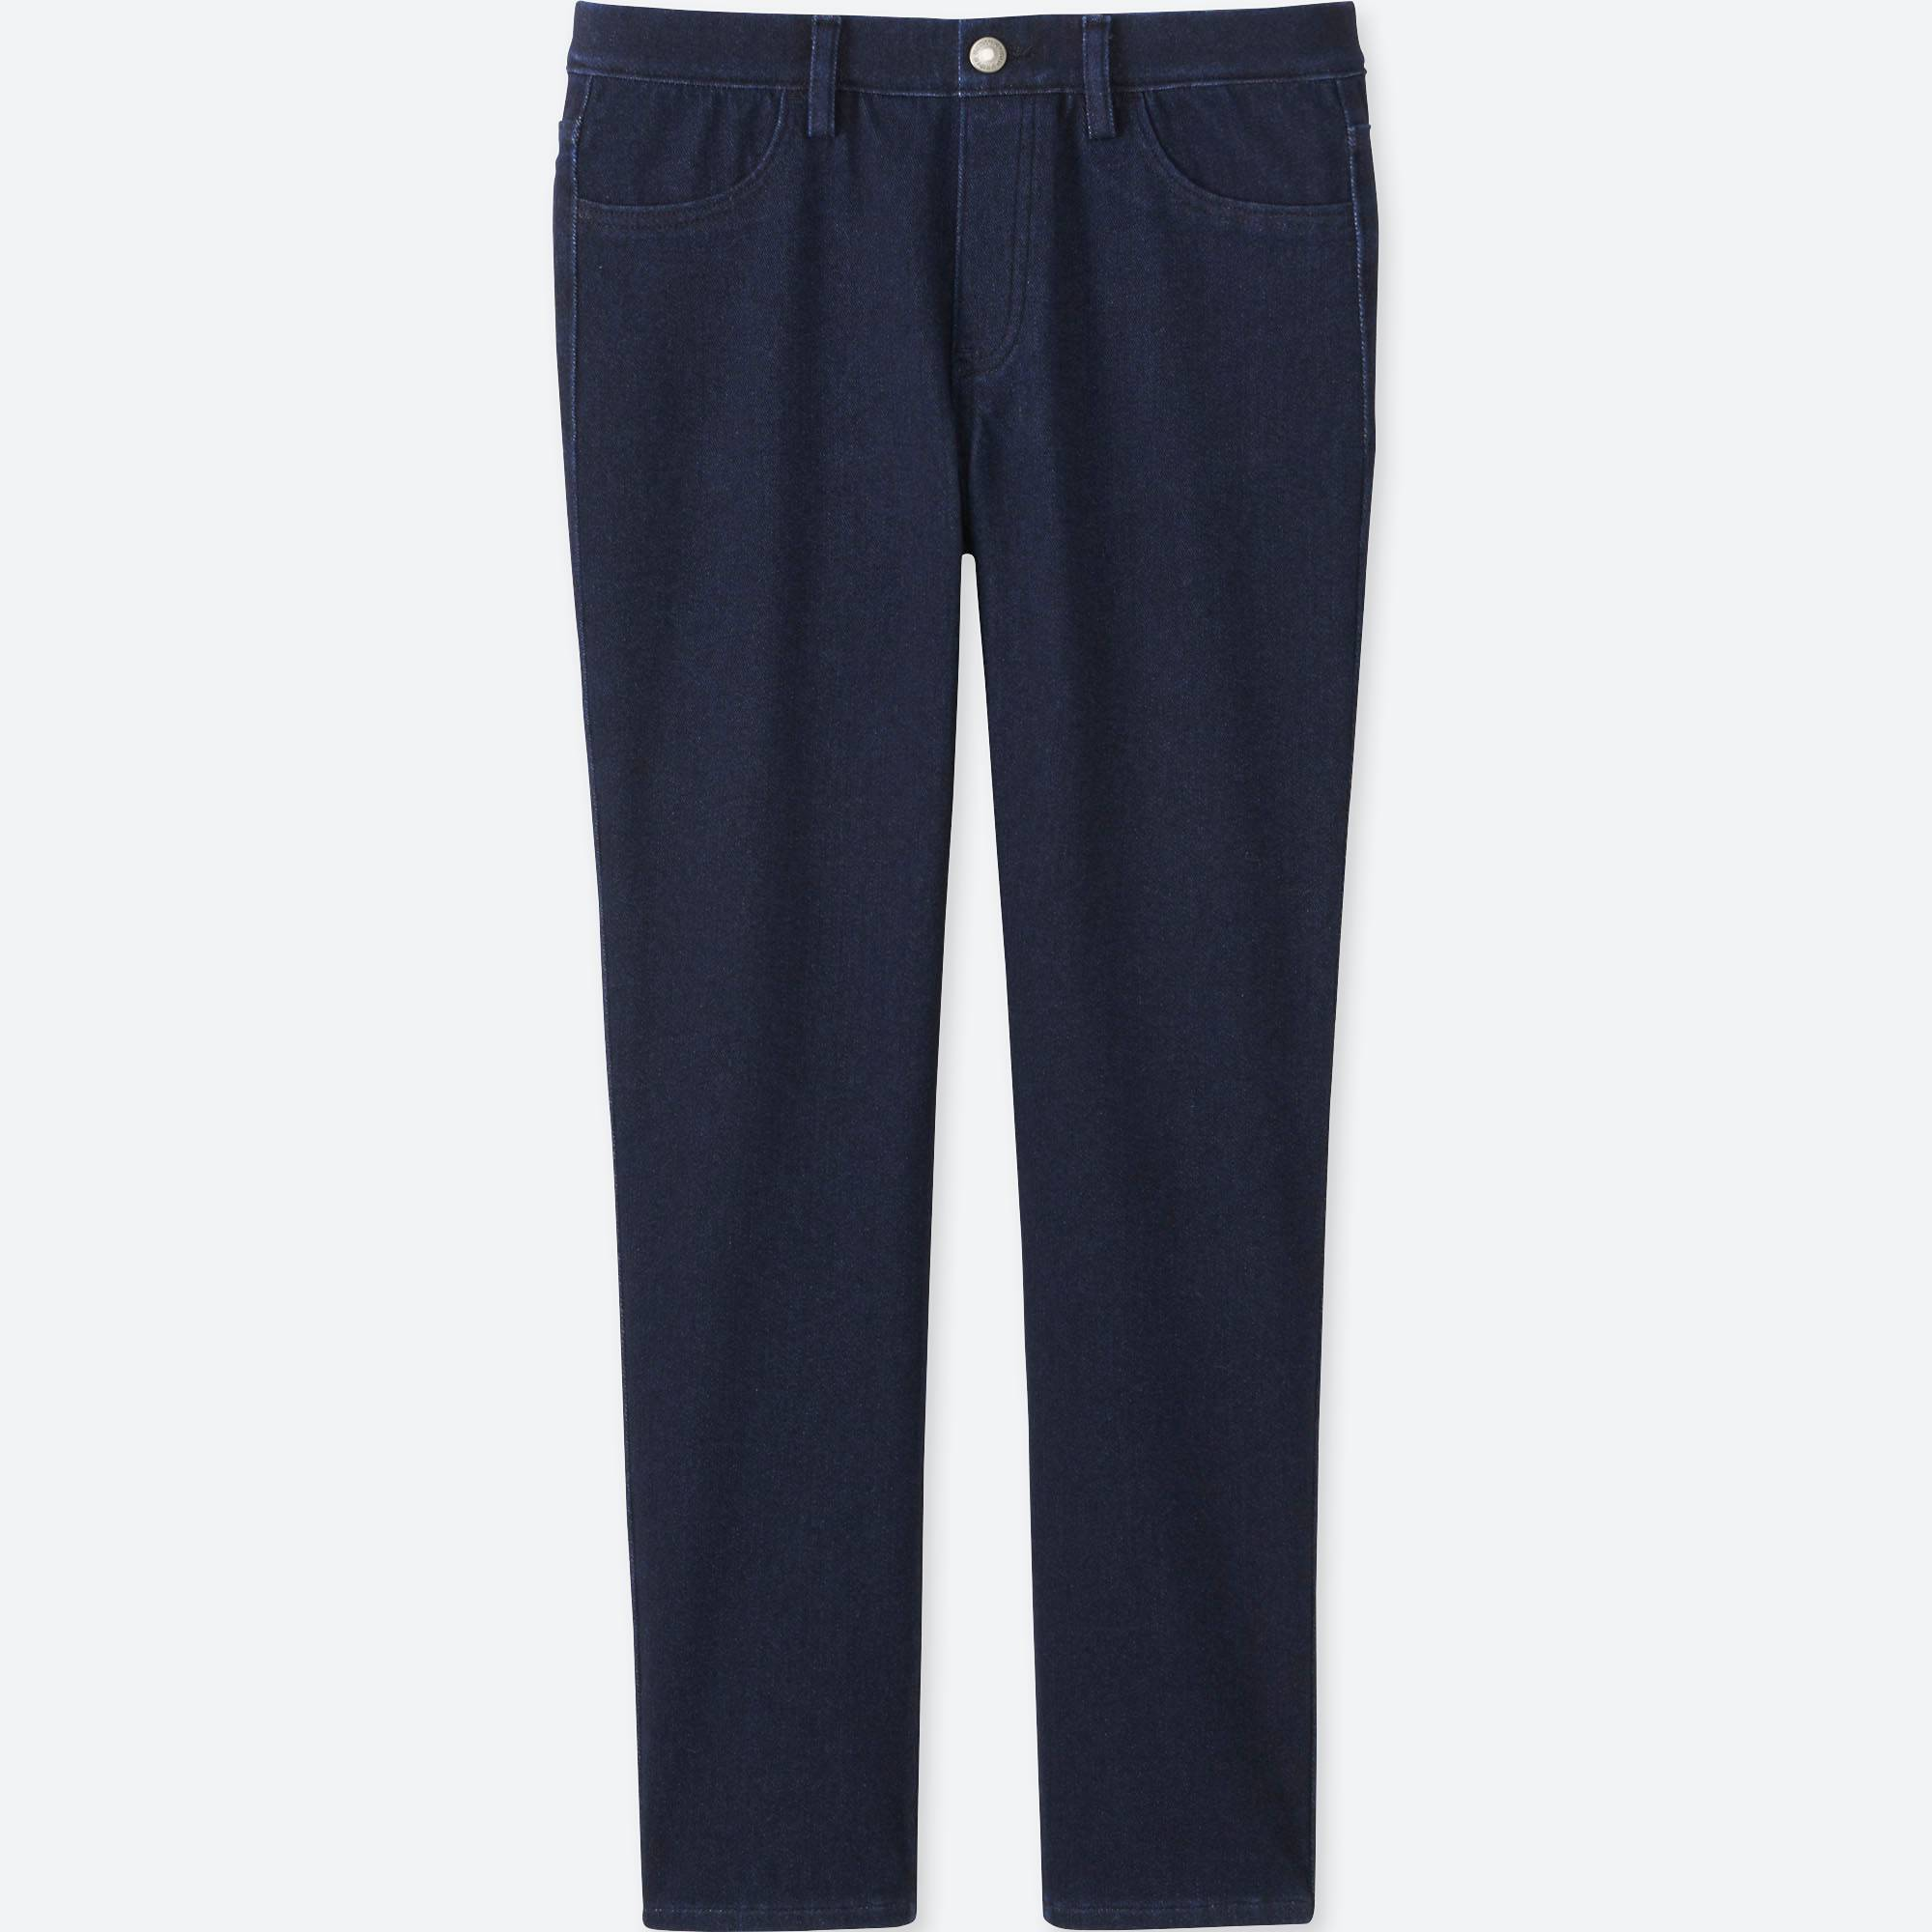 UNIQLO / Quần legging women denim cropped leggings pants